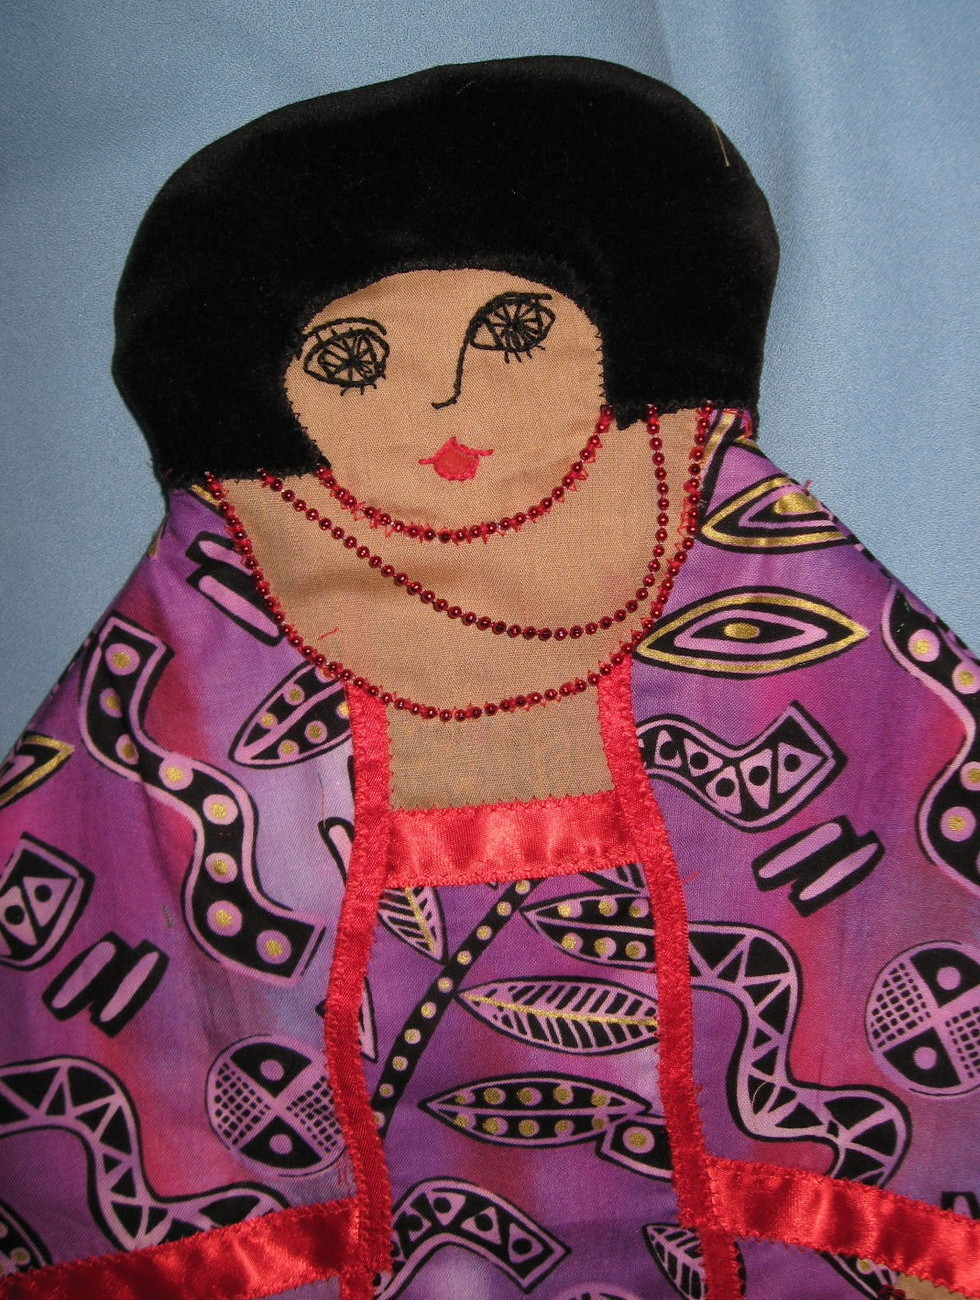 African Lady Pajama bed Pillow Doll handcrafted USA handmade purple fabric H5